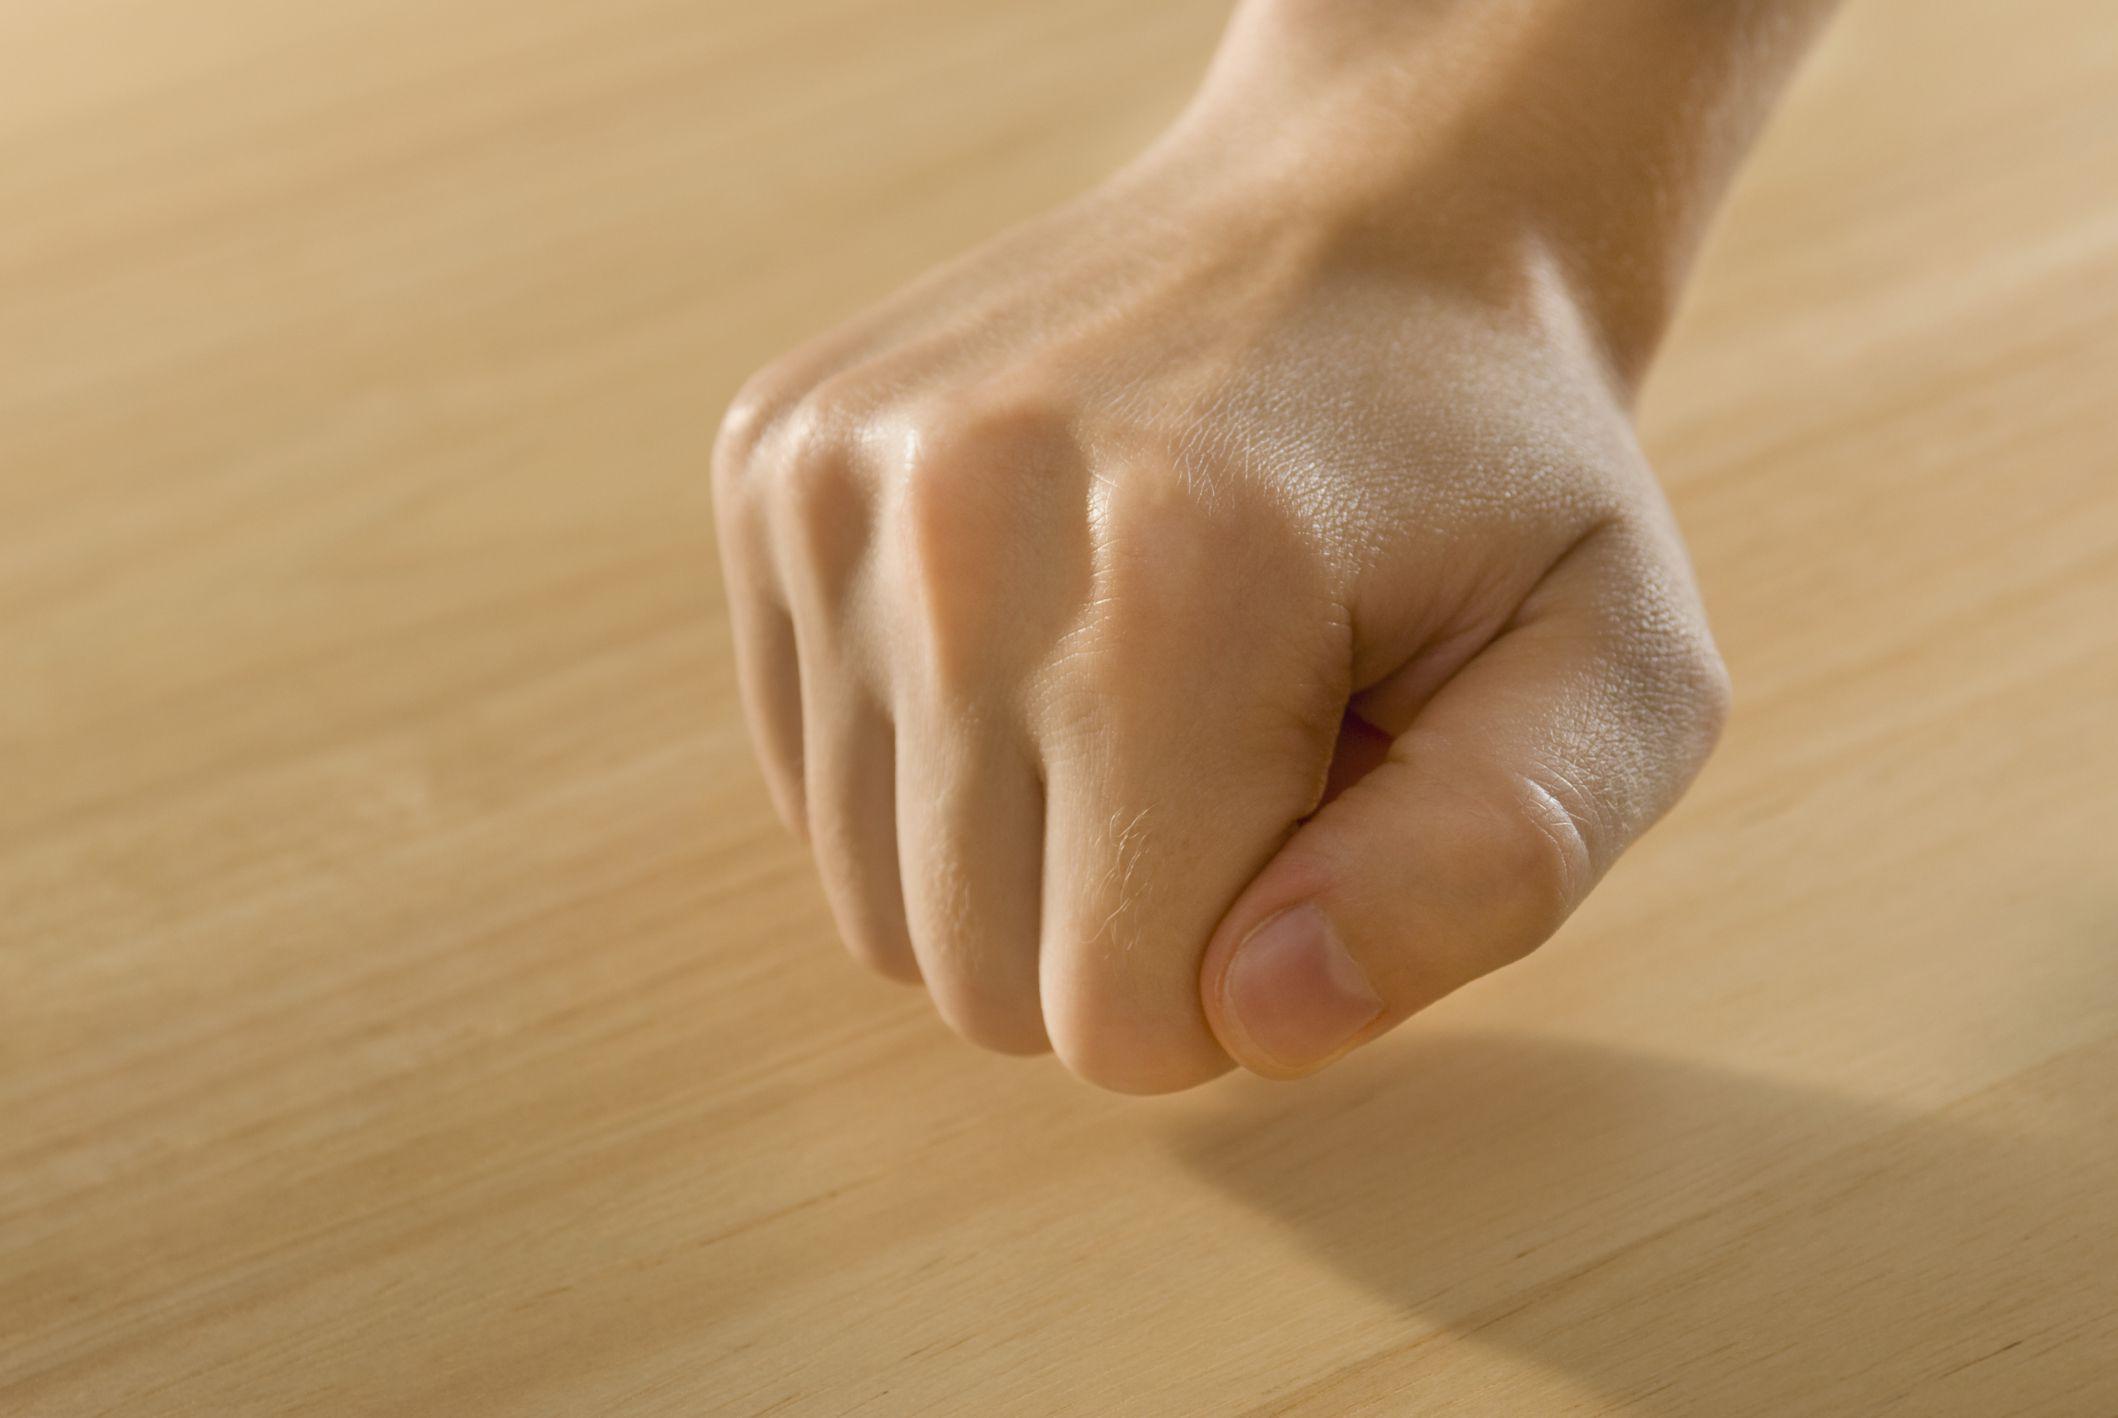 Image of a person knocking on wood.